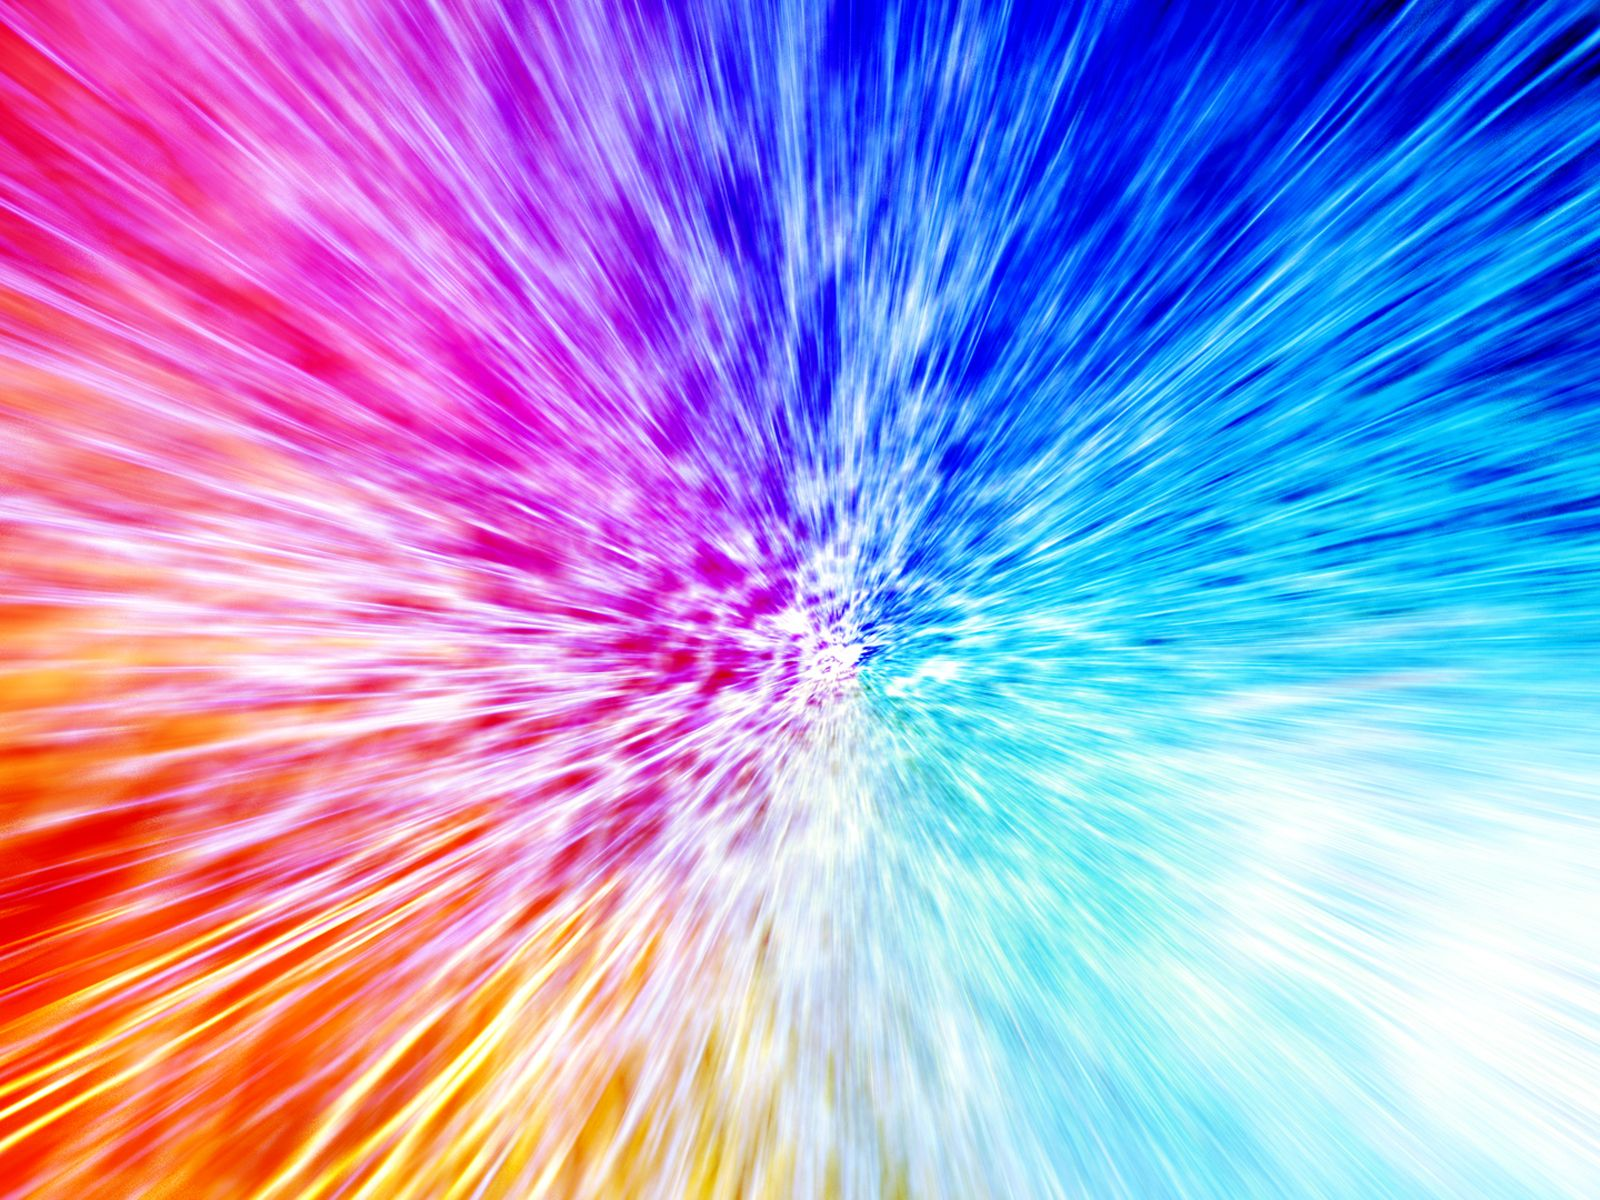 Cool Backgrounds Moving Wallpaper Abstract Abstract Wallpaper Colorful Wallpaper